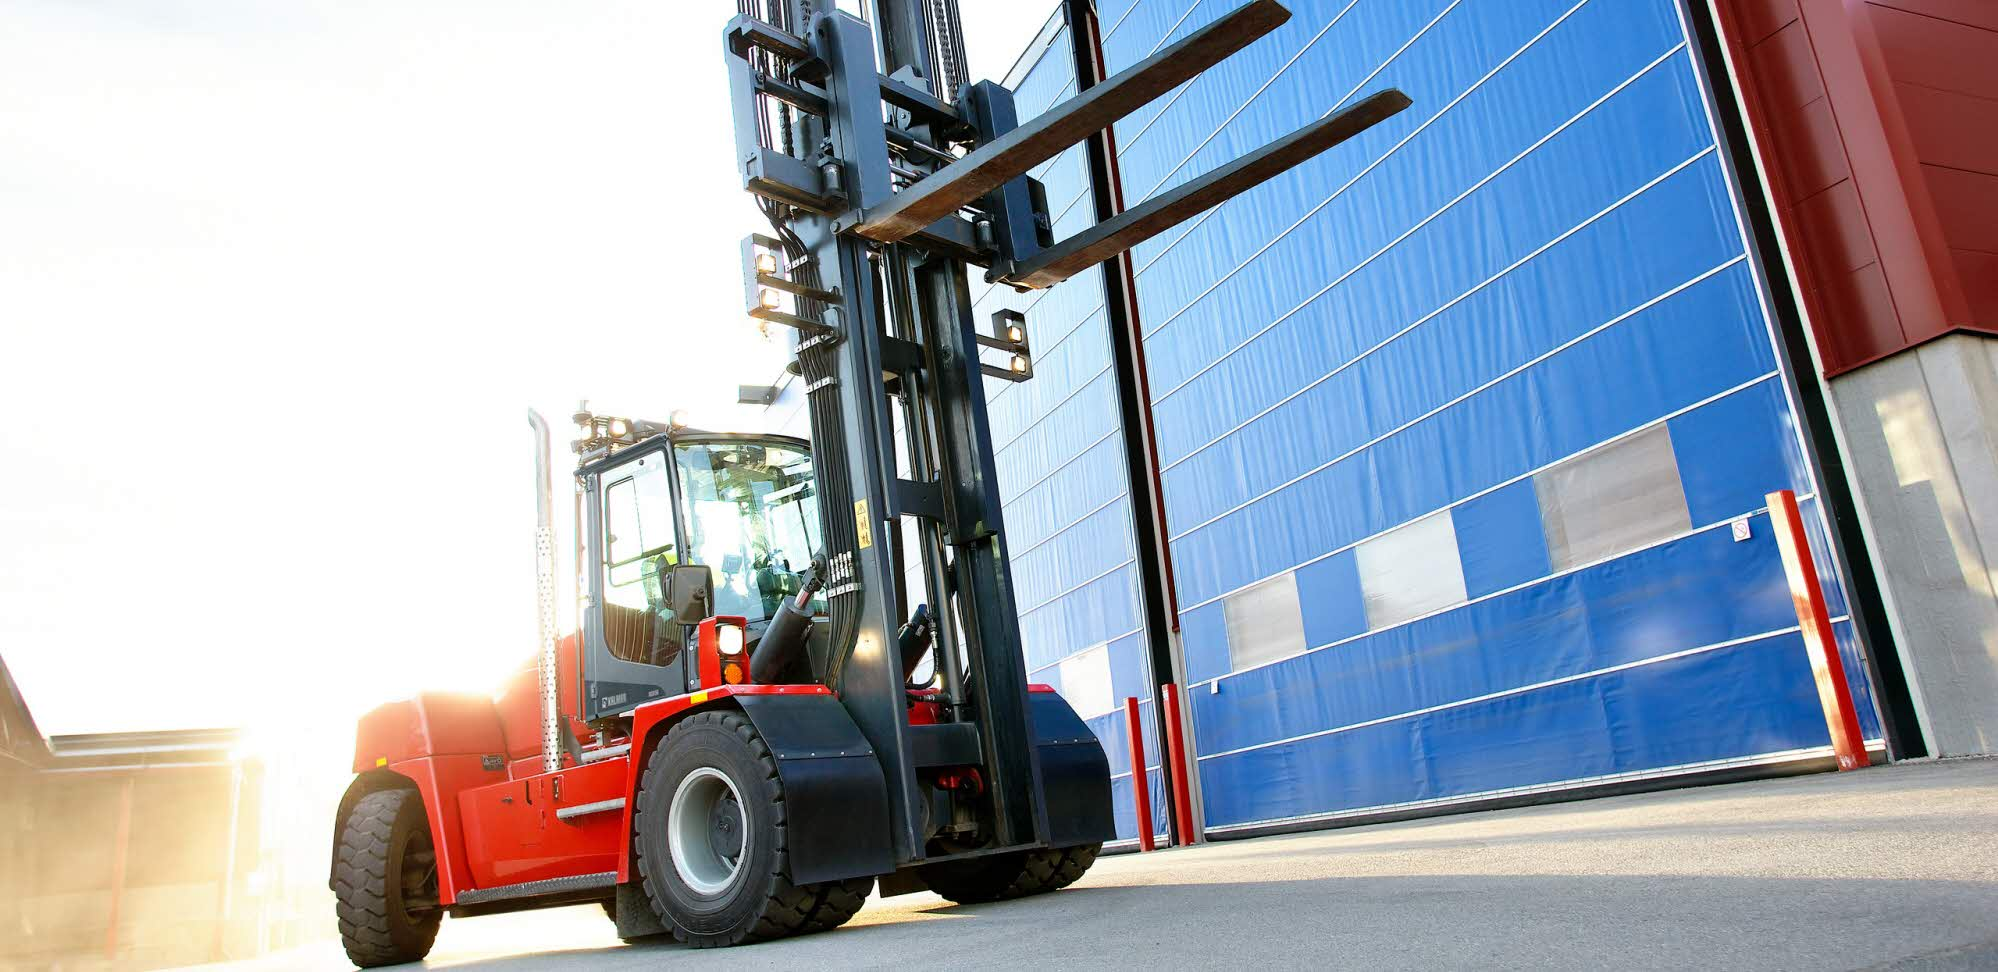 Forklift from Cargotec